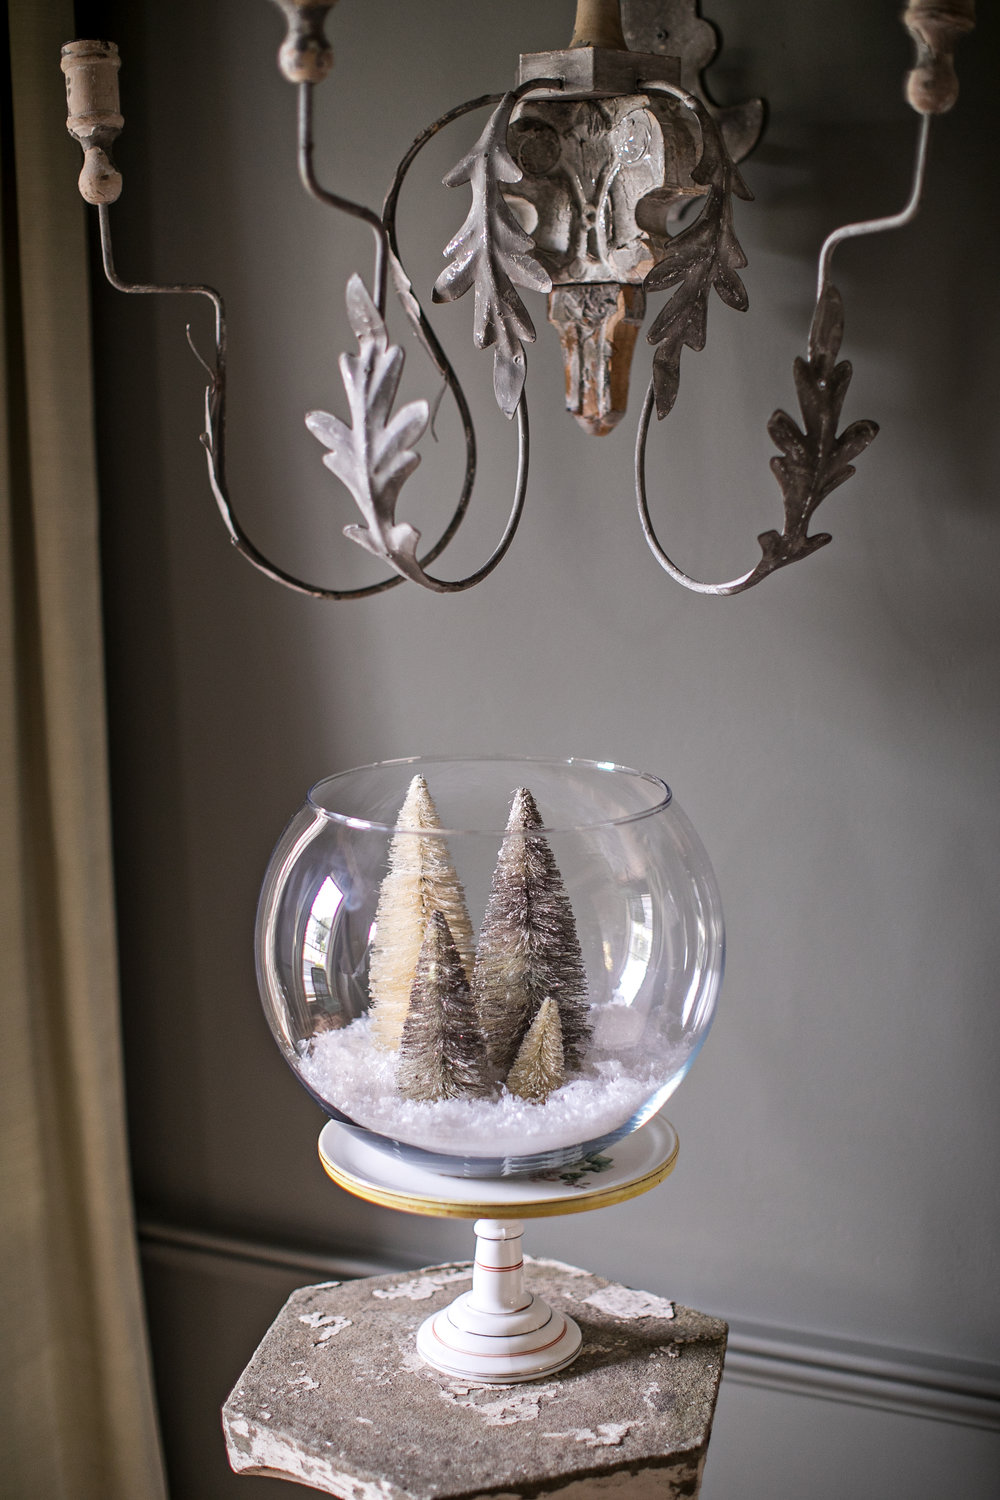 Christmas Bottle Brush Tree Globe.jpg